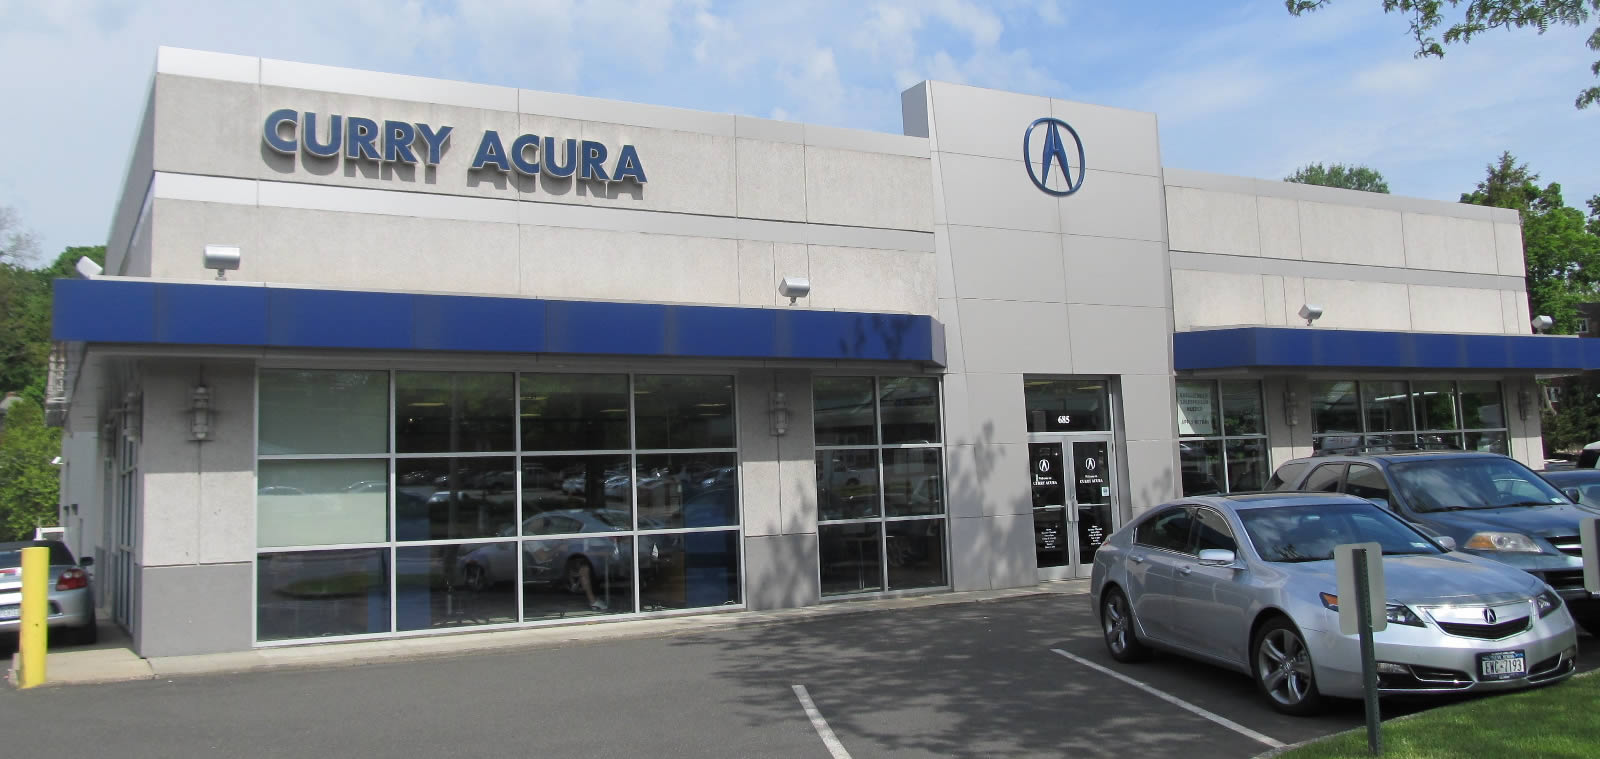 Curry Acura Dealership